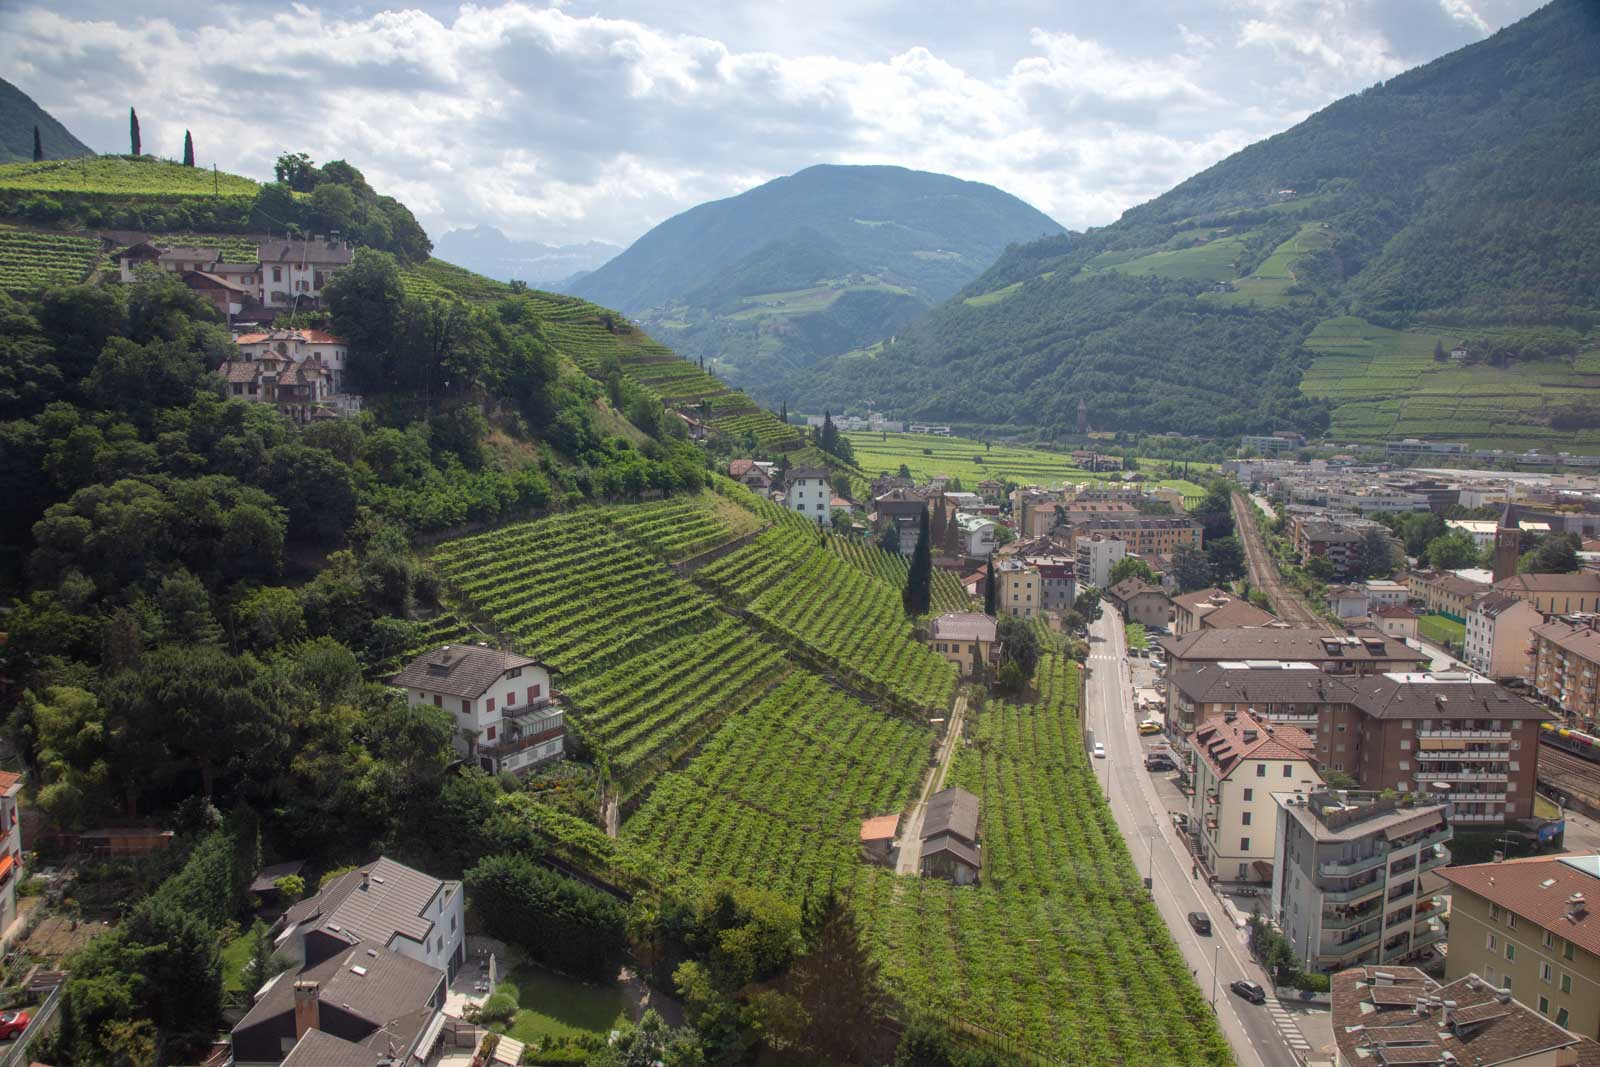 A view over the vineyards of Santa Maddalena above Bolzano, where Schiava is king. ©Kevin Day/Opening a Bottle